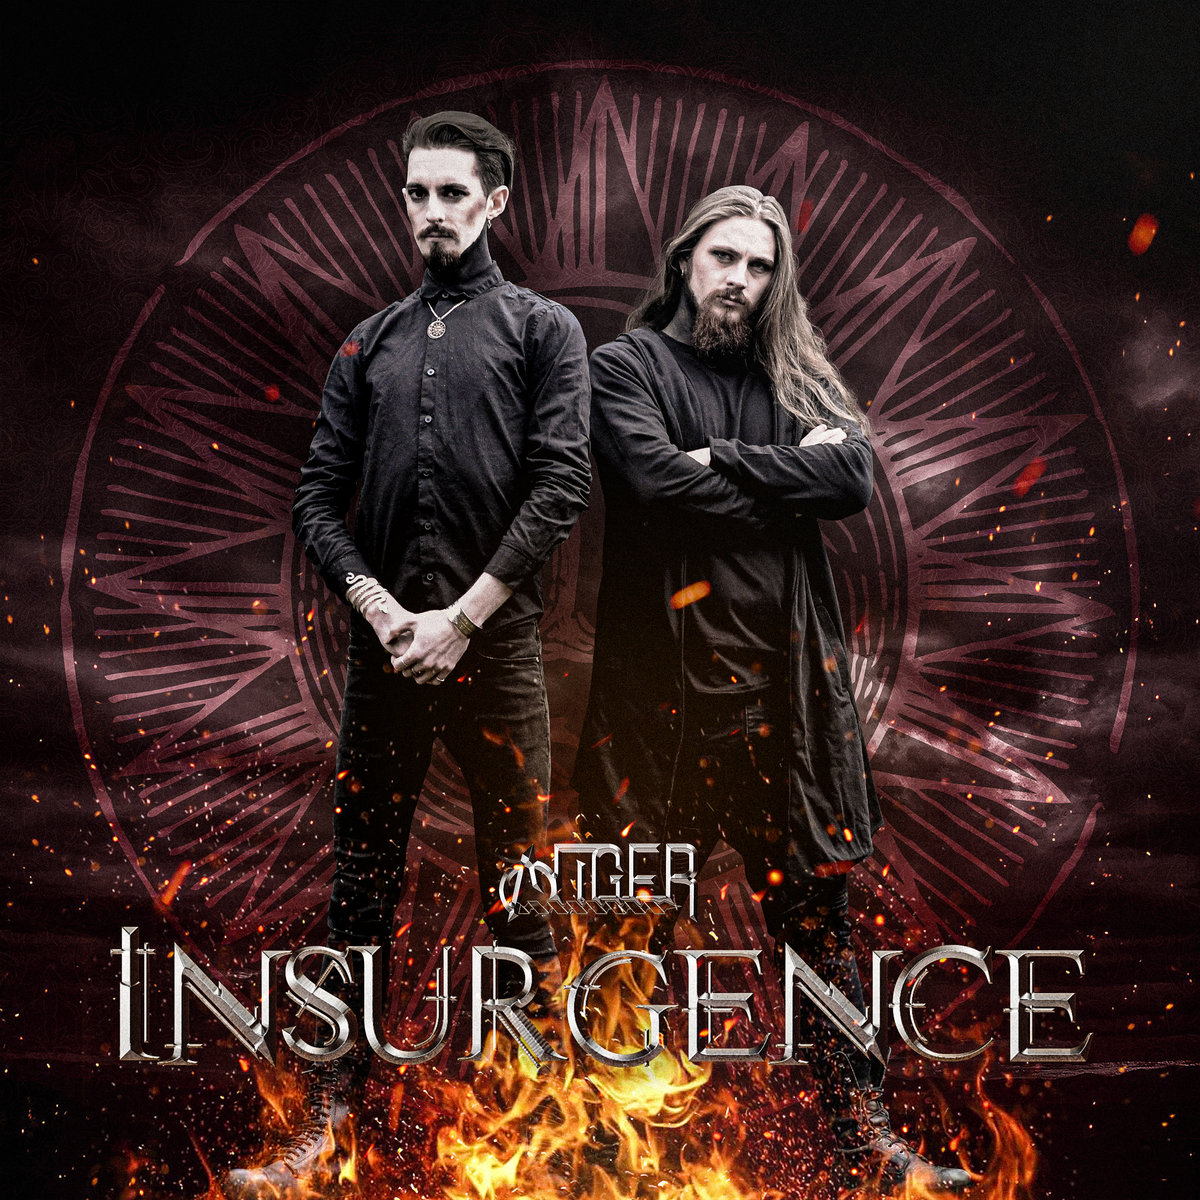 Auger - Insurgence (2020) [FLAC] Download